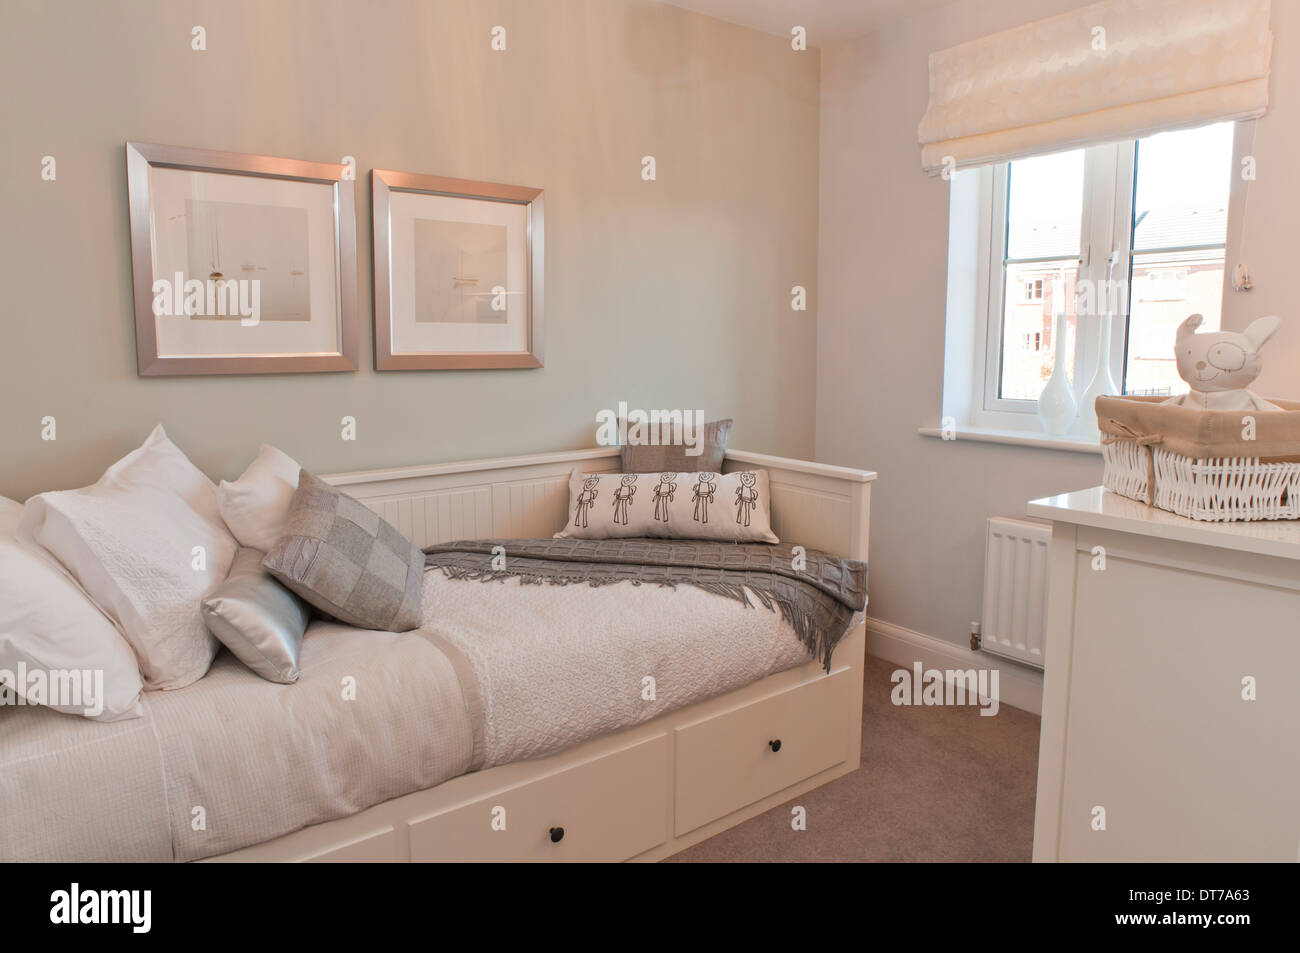 Spare room with sofa bed and neutral decoration Stock Photo - Alamy